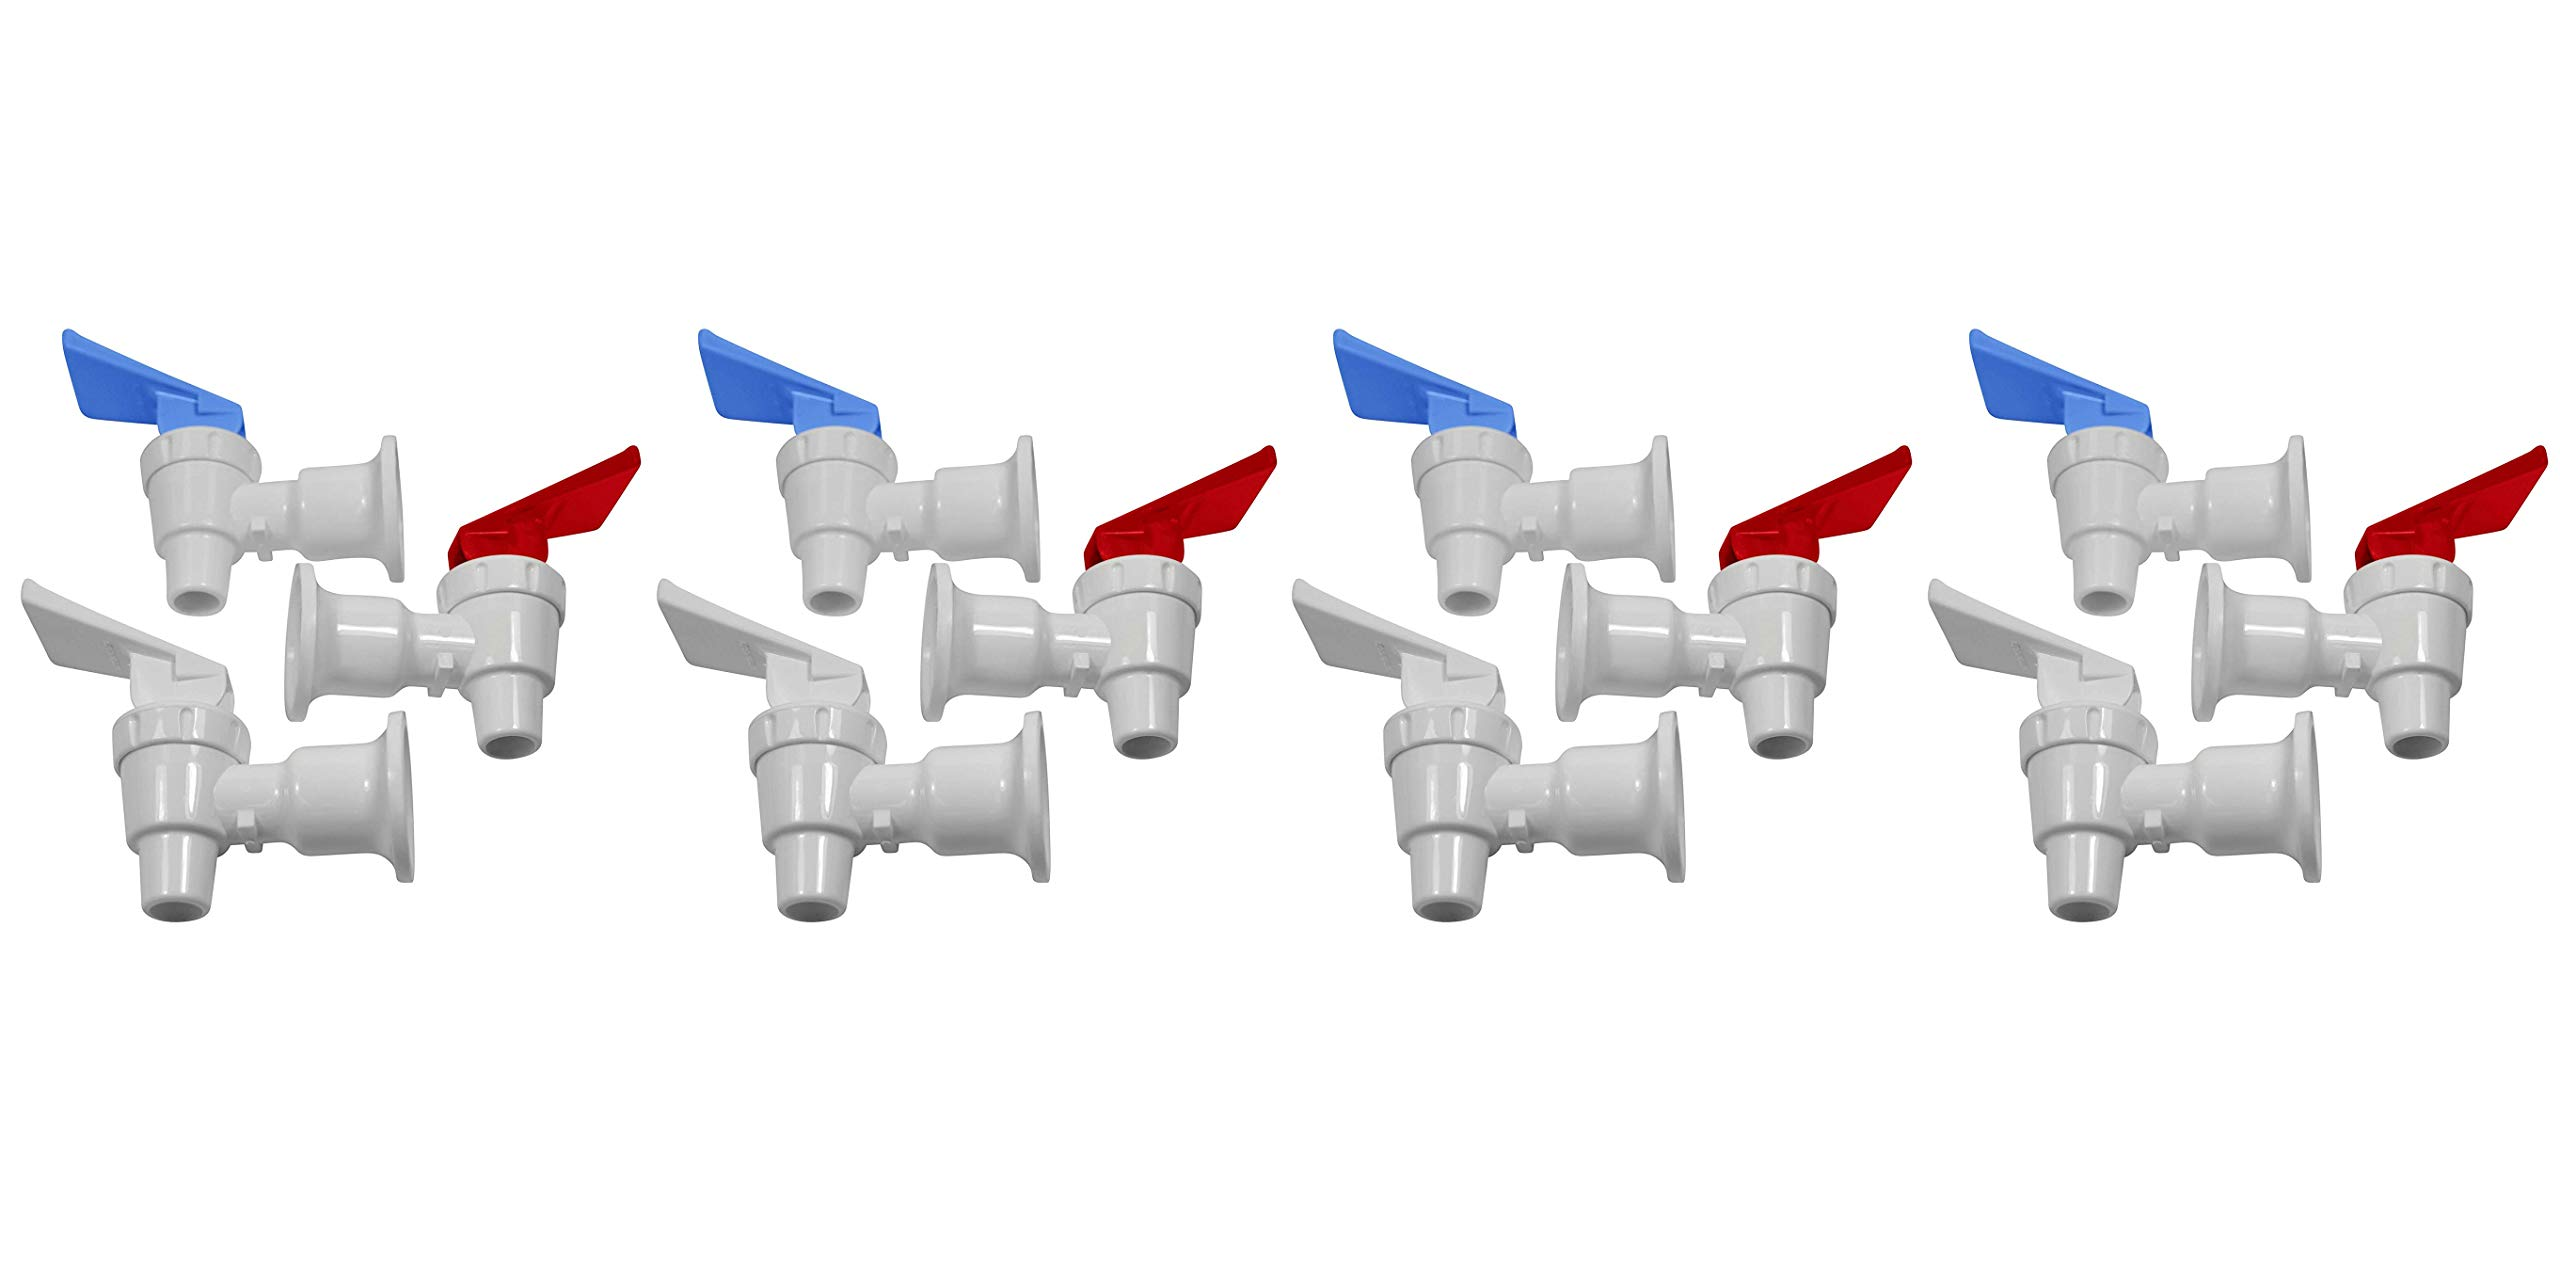 Smart Packs by OCSParts RWB217 Sunbeam Water Cooler Faucet, Tomlinson Blue/Red and White Handle, Combo Pack (Pack of 3) (Fоur Paсk)